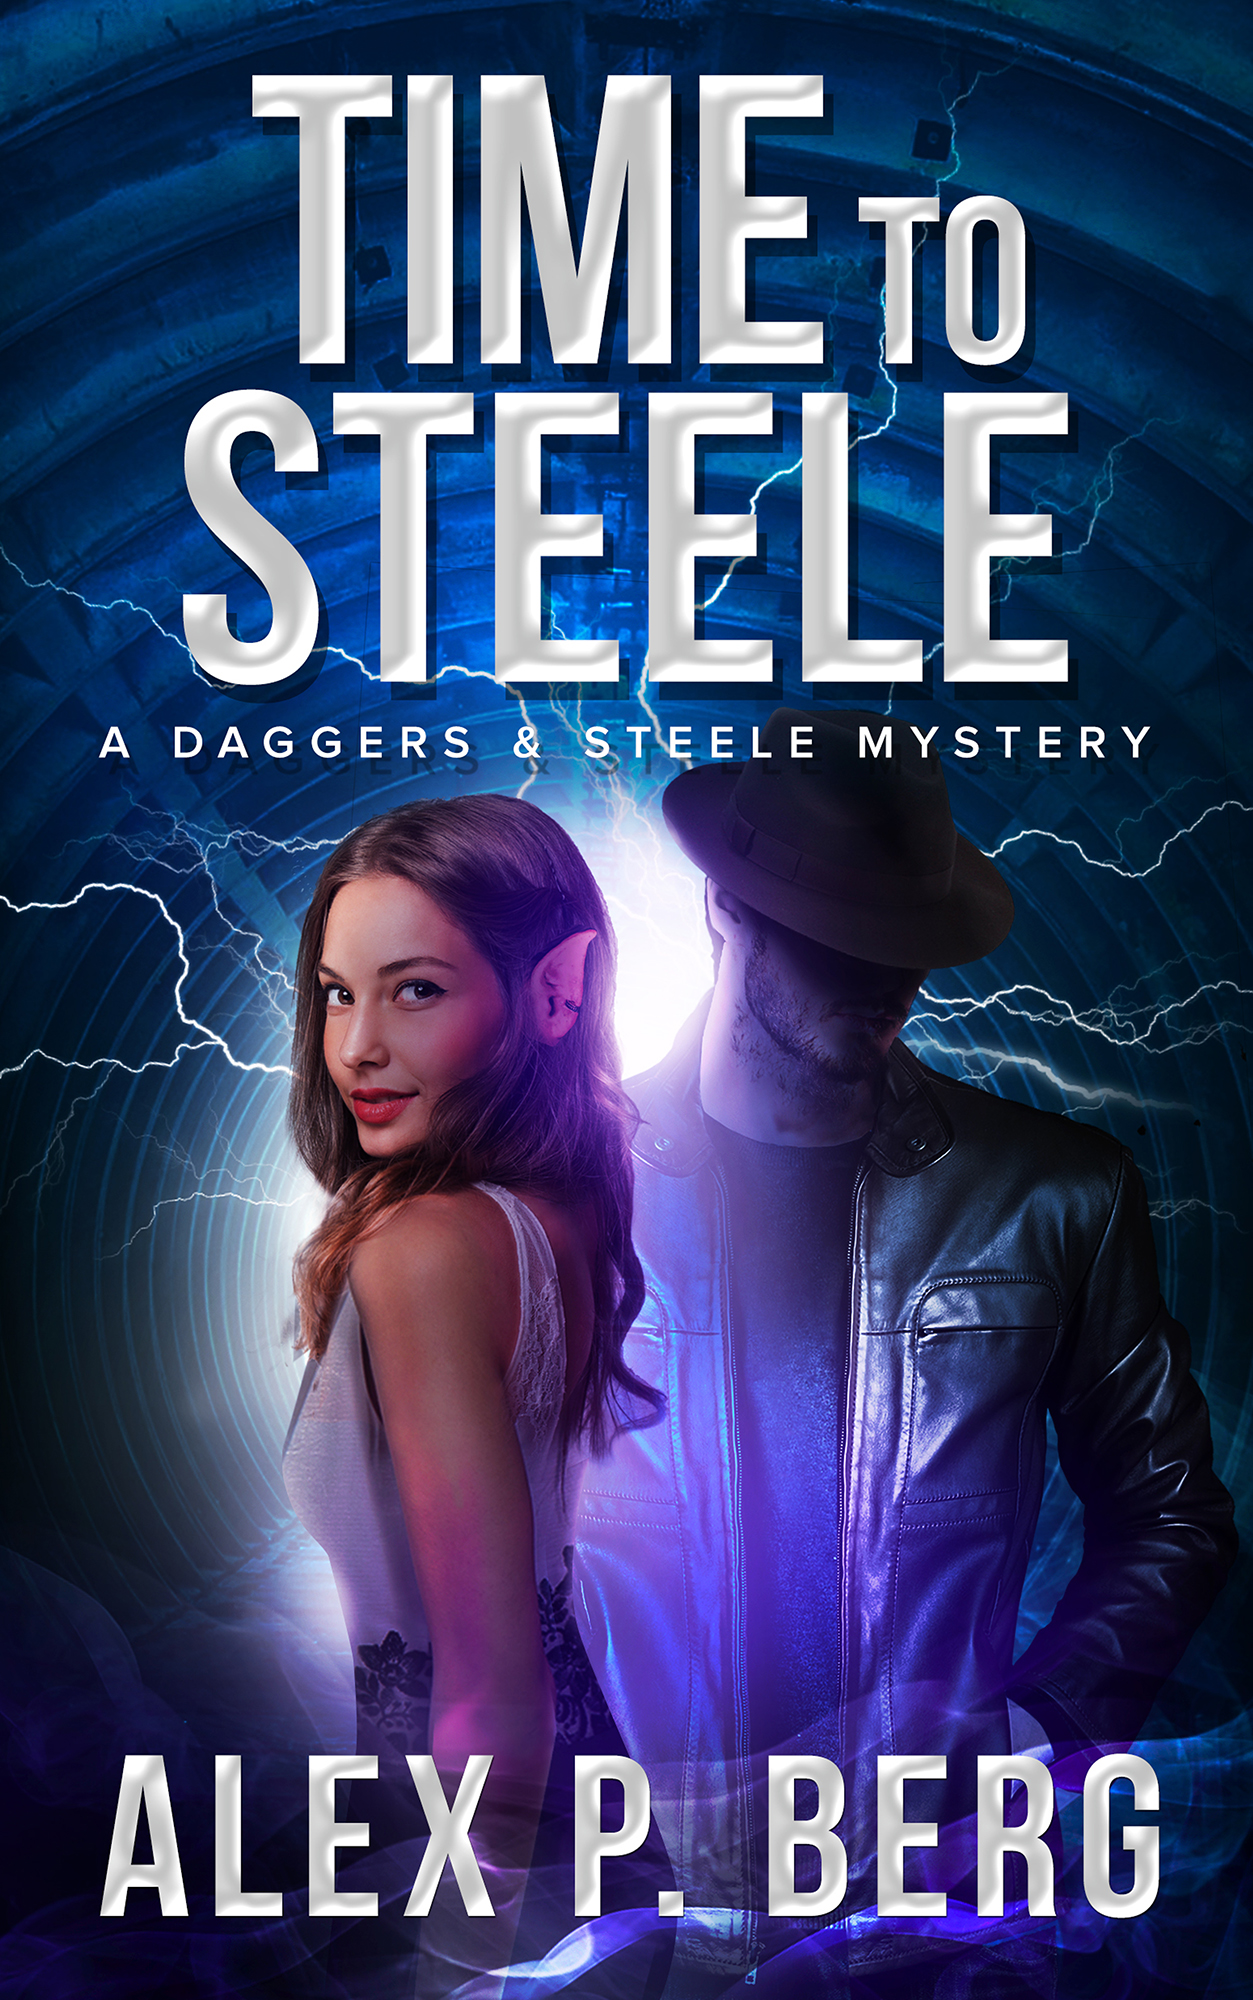 Time to Steele